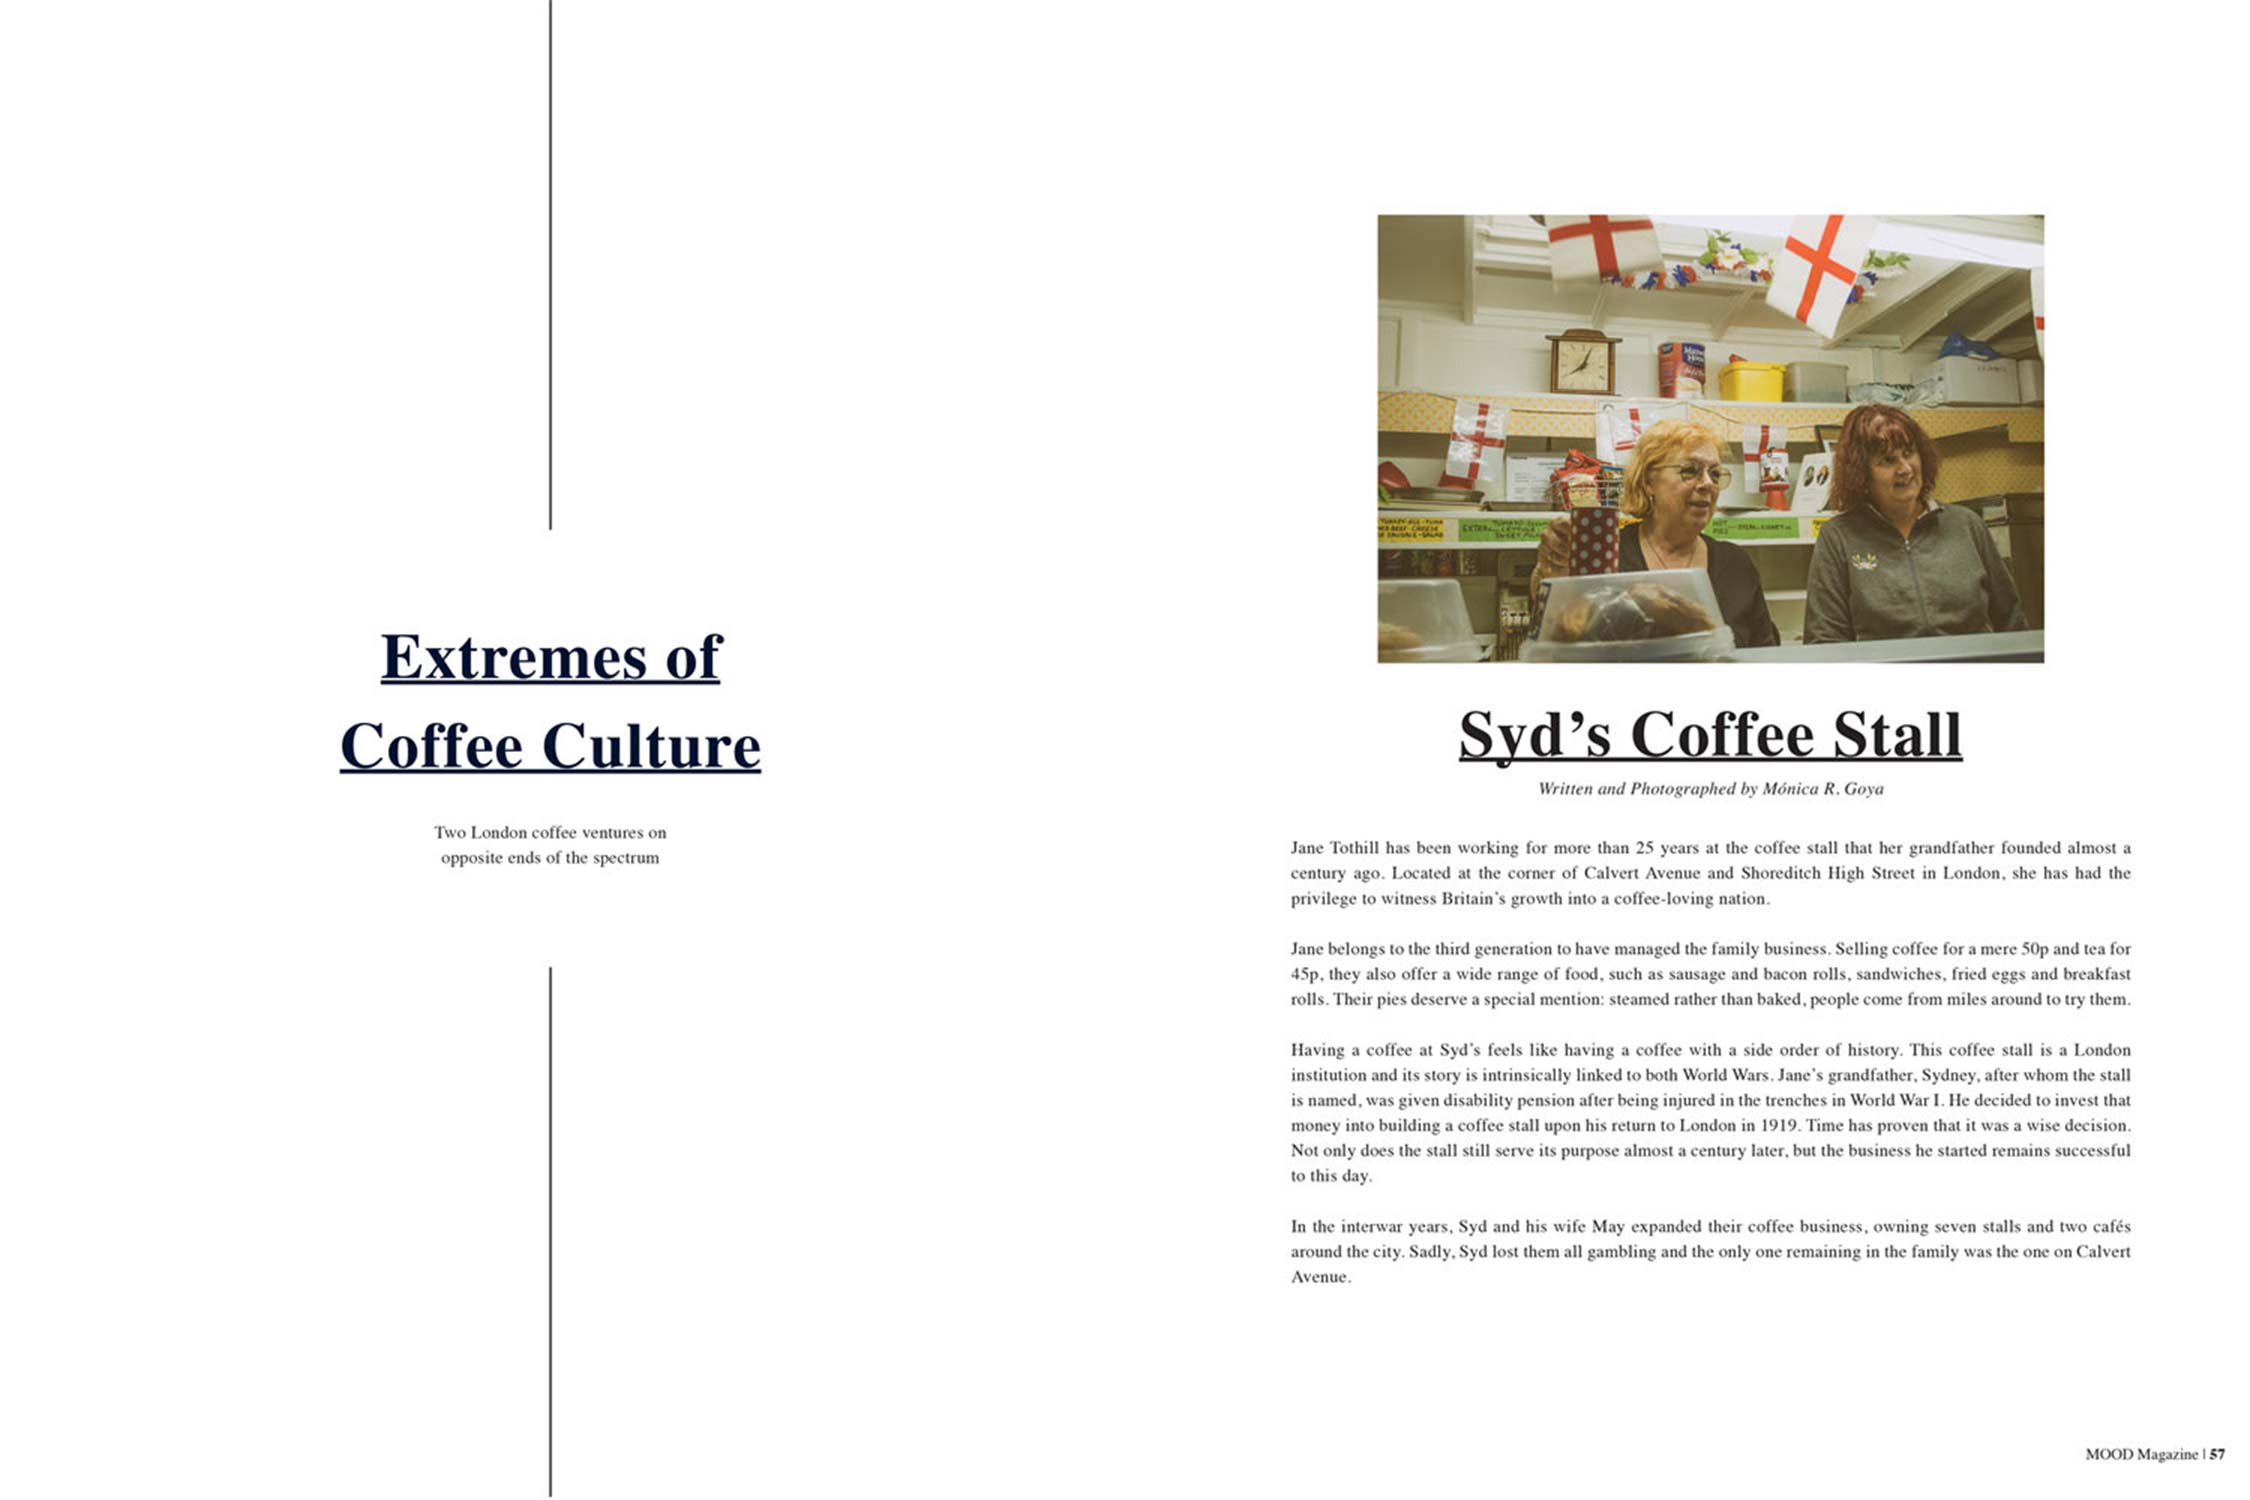 'Extremes of Coffee Culture' - Mood magazine, Issue 5, 2015 - Words & Photography